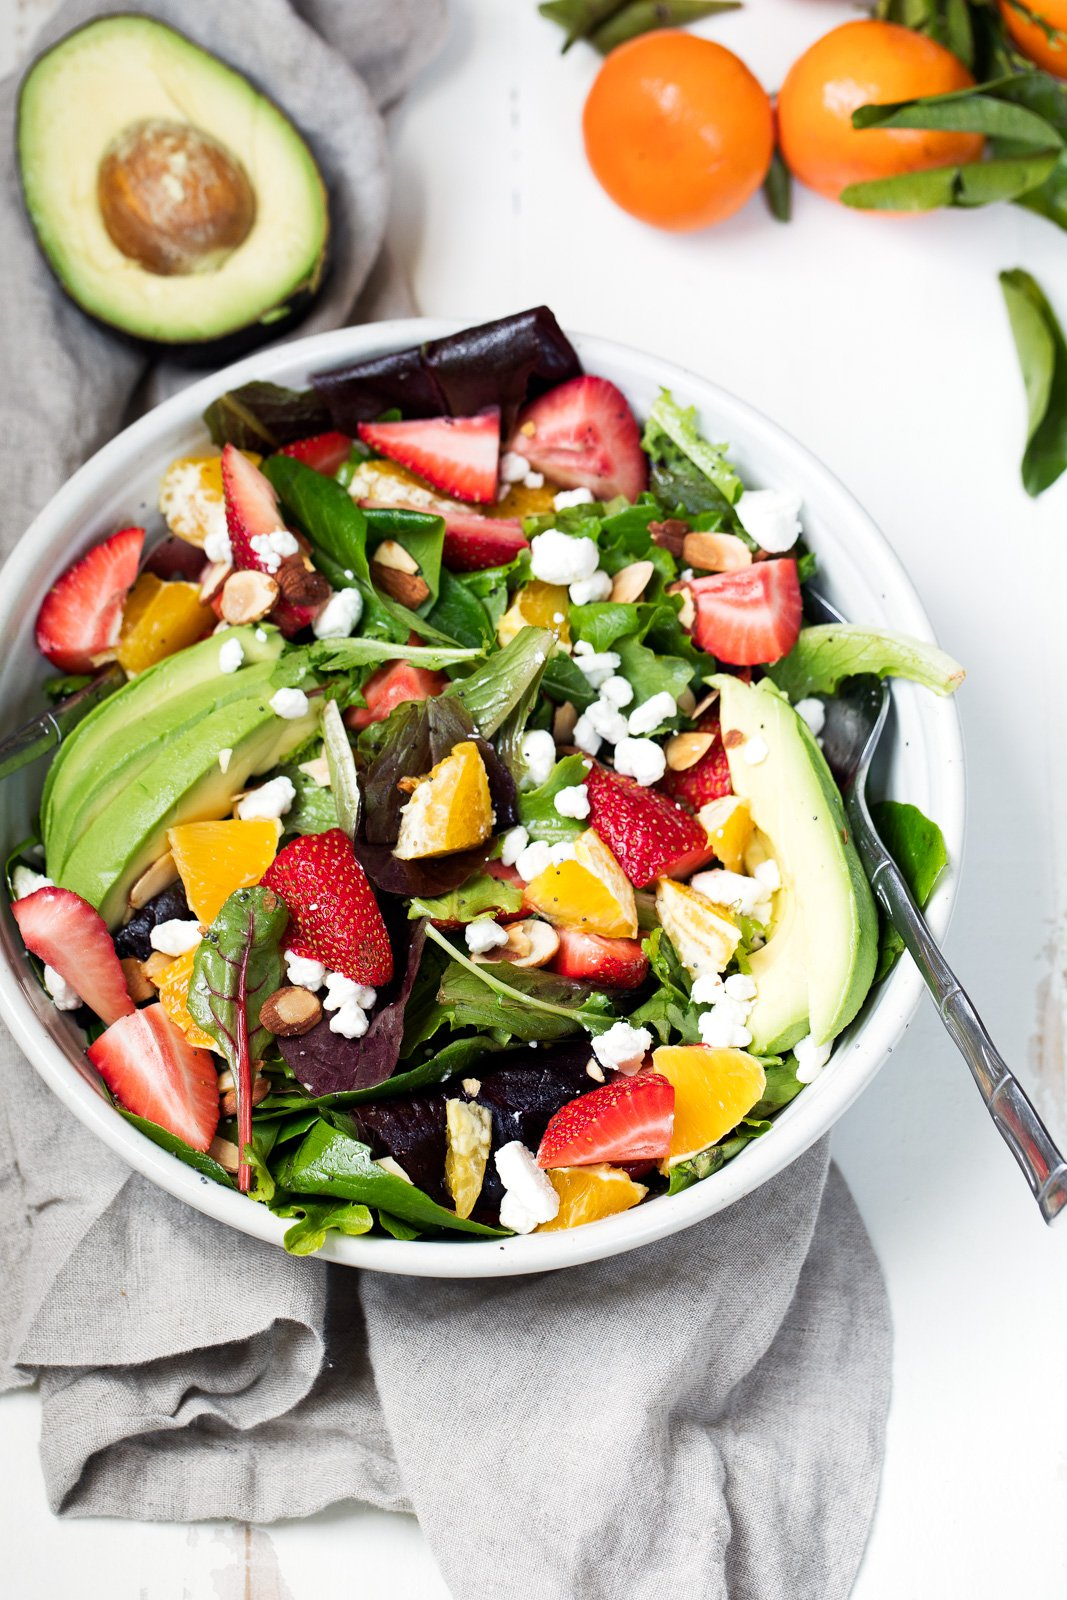 Gorgeous Strawberry Avocado Salad packed with heart-healthy fats, creamy goat cheese, toasted almonds and a light citrus poppyseed dressing. Like Panera's salad -- but so much better!